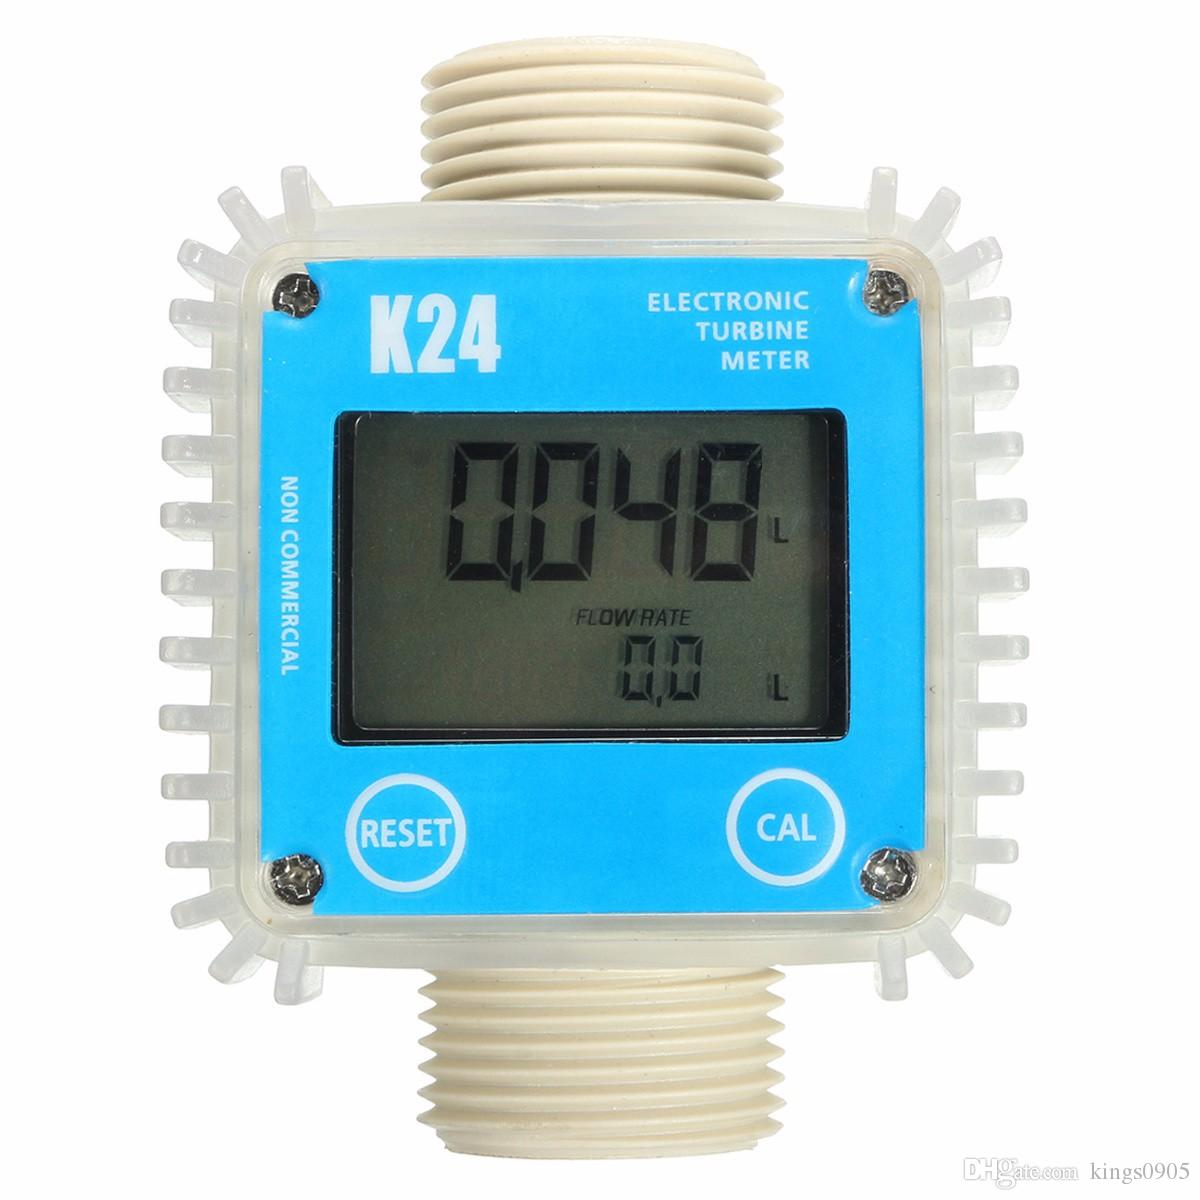 "Hot sale Fuel Flow Meter K24 1"" -Turbine- Digital -Diesel- Guage Counter For Chemicals Water 0.6MPa 10-120L/Min free shipping"